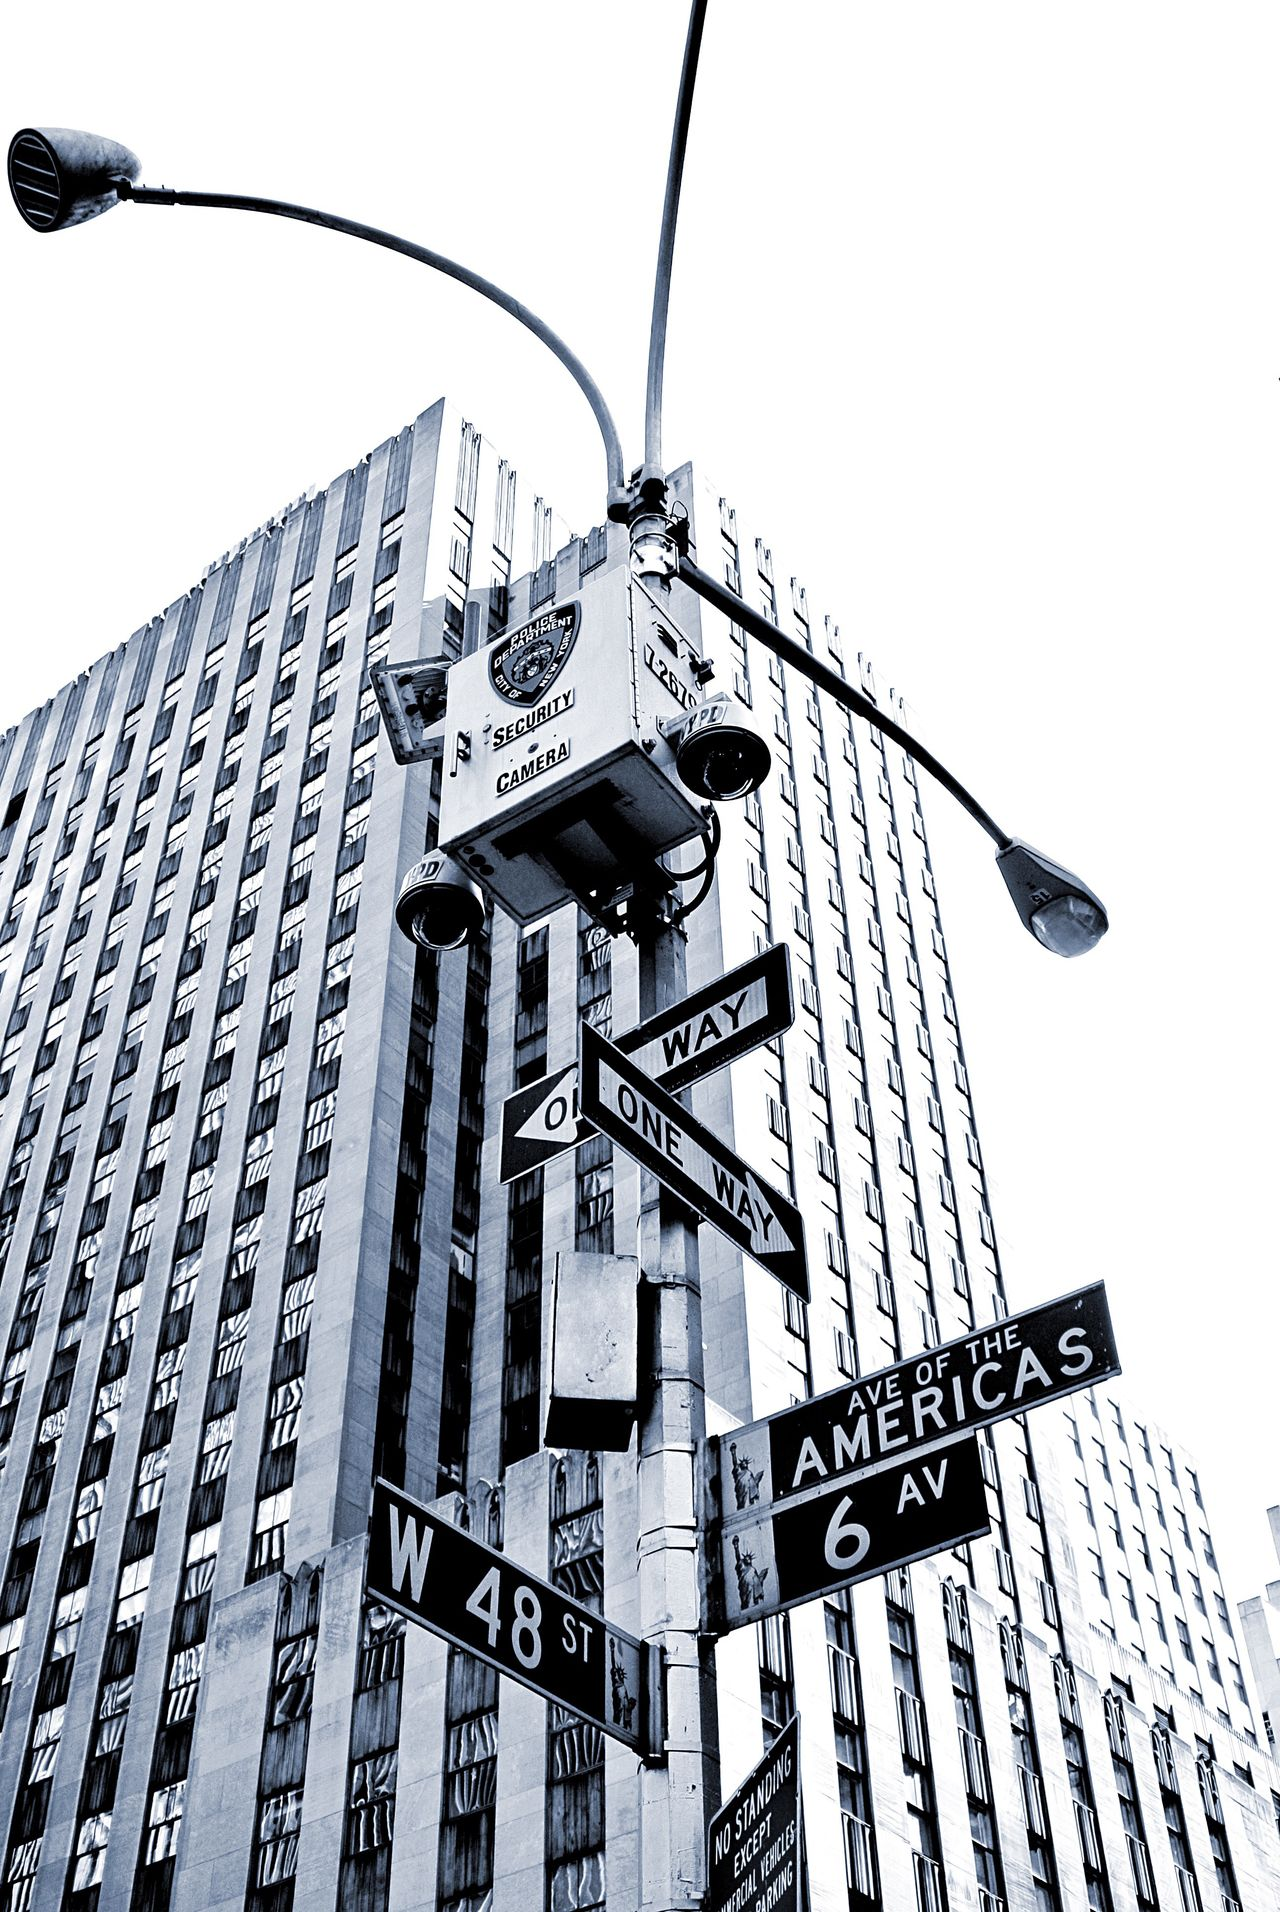 New York New York City NYC Street Photography Sign Road Sign Architecture Security Camera Street Light Urban City City Life Black And White Street Sign Street Signs Securitycam Security Cam Security Camera Safety Cctv Street Signage Road Signs Battle Of The Cities